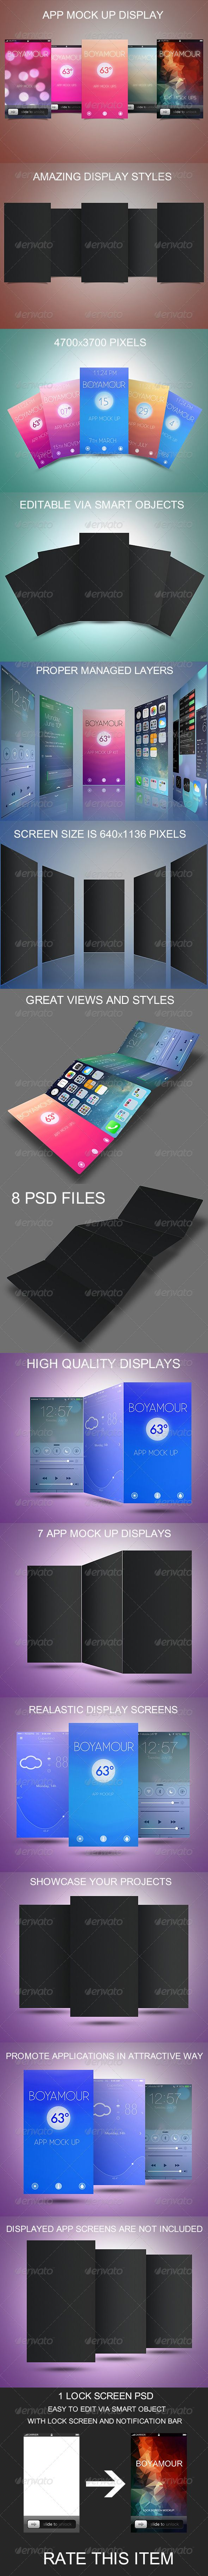 app mock up set features 8 psd files 7 display screens and